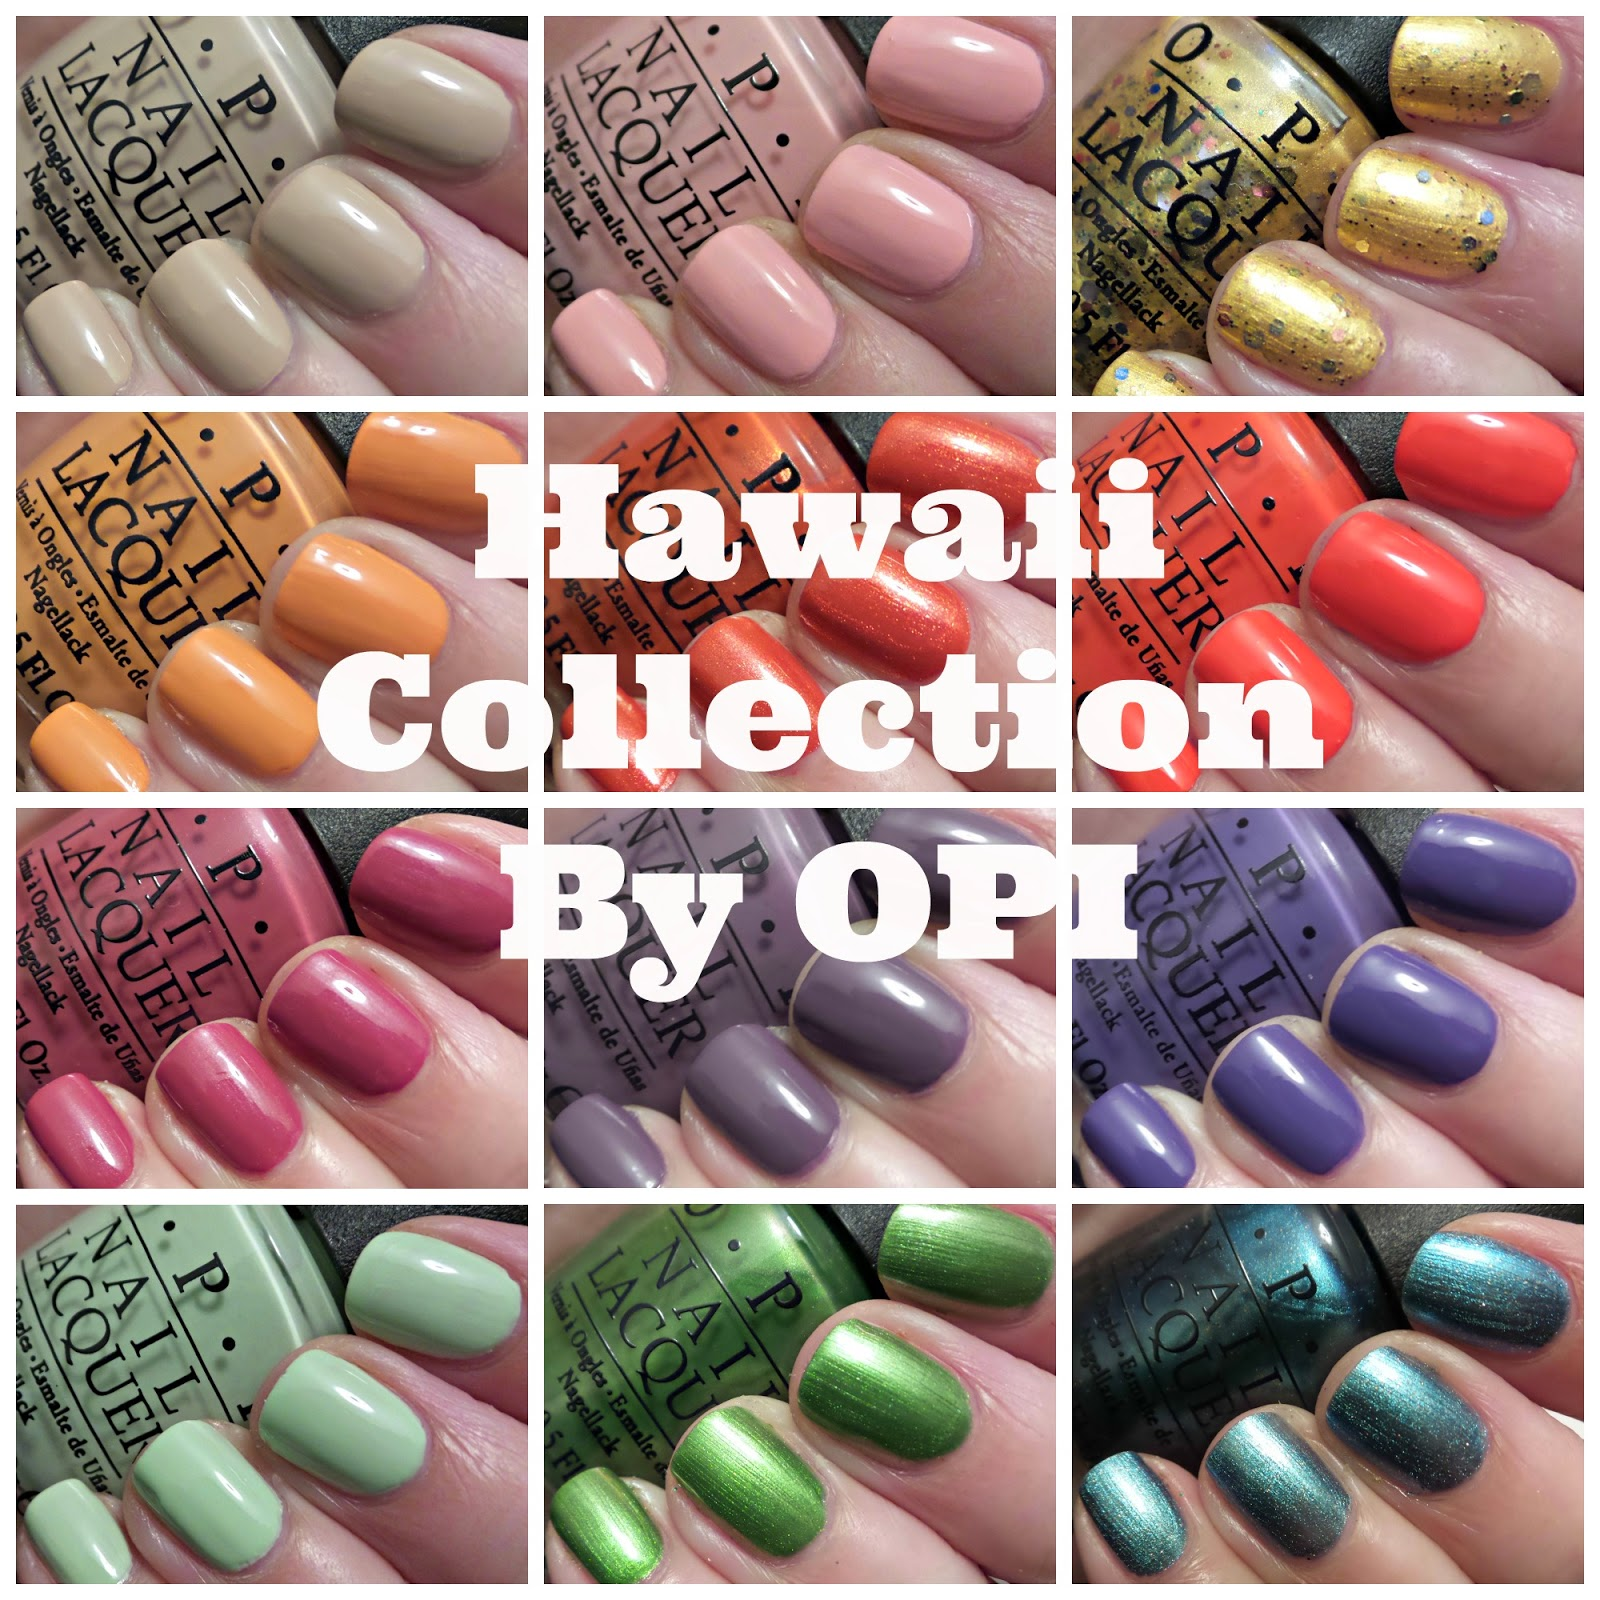 obsessive cosmetic hoarders unite new hawaii collection by opi